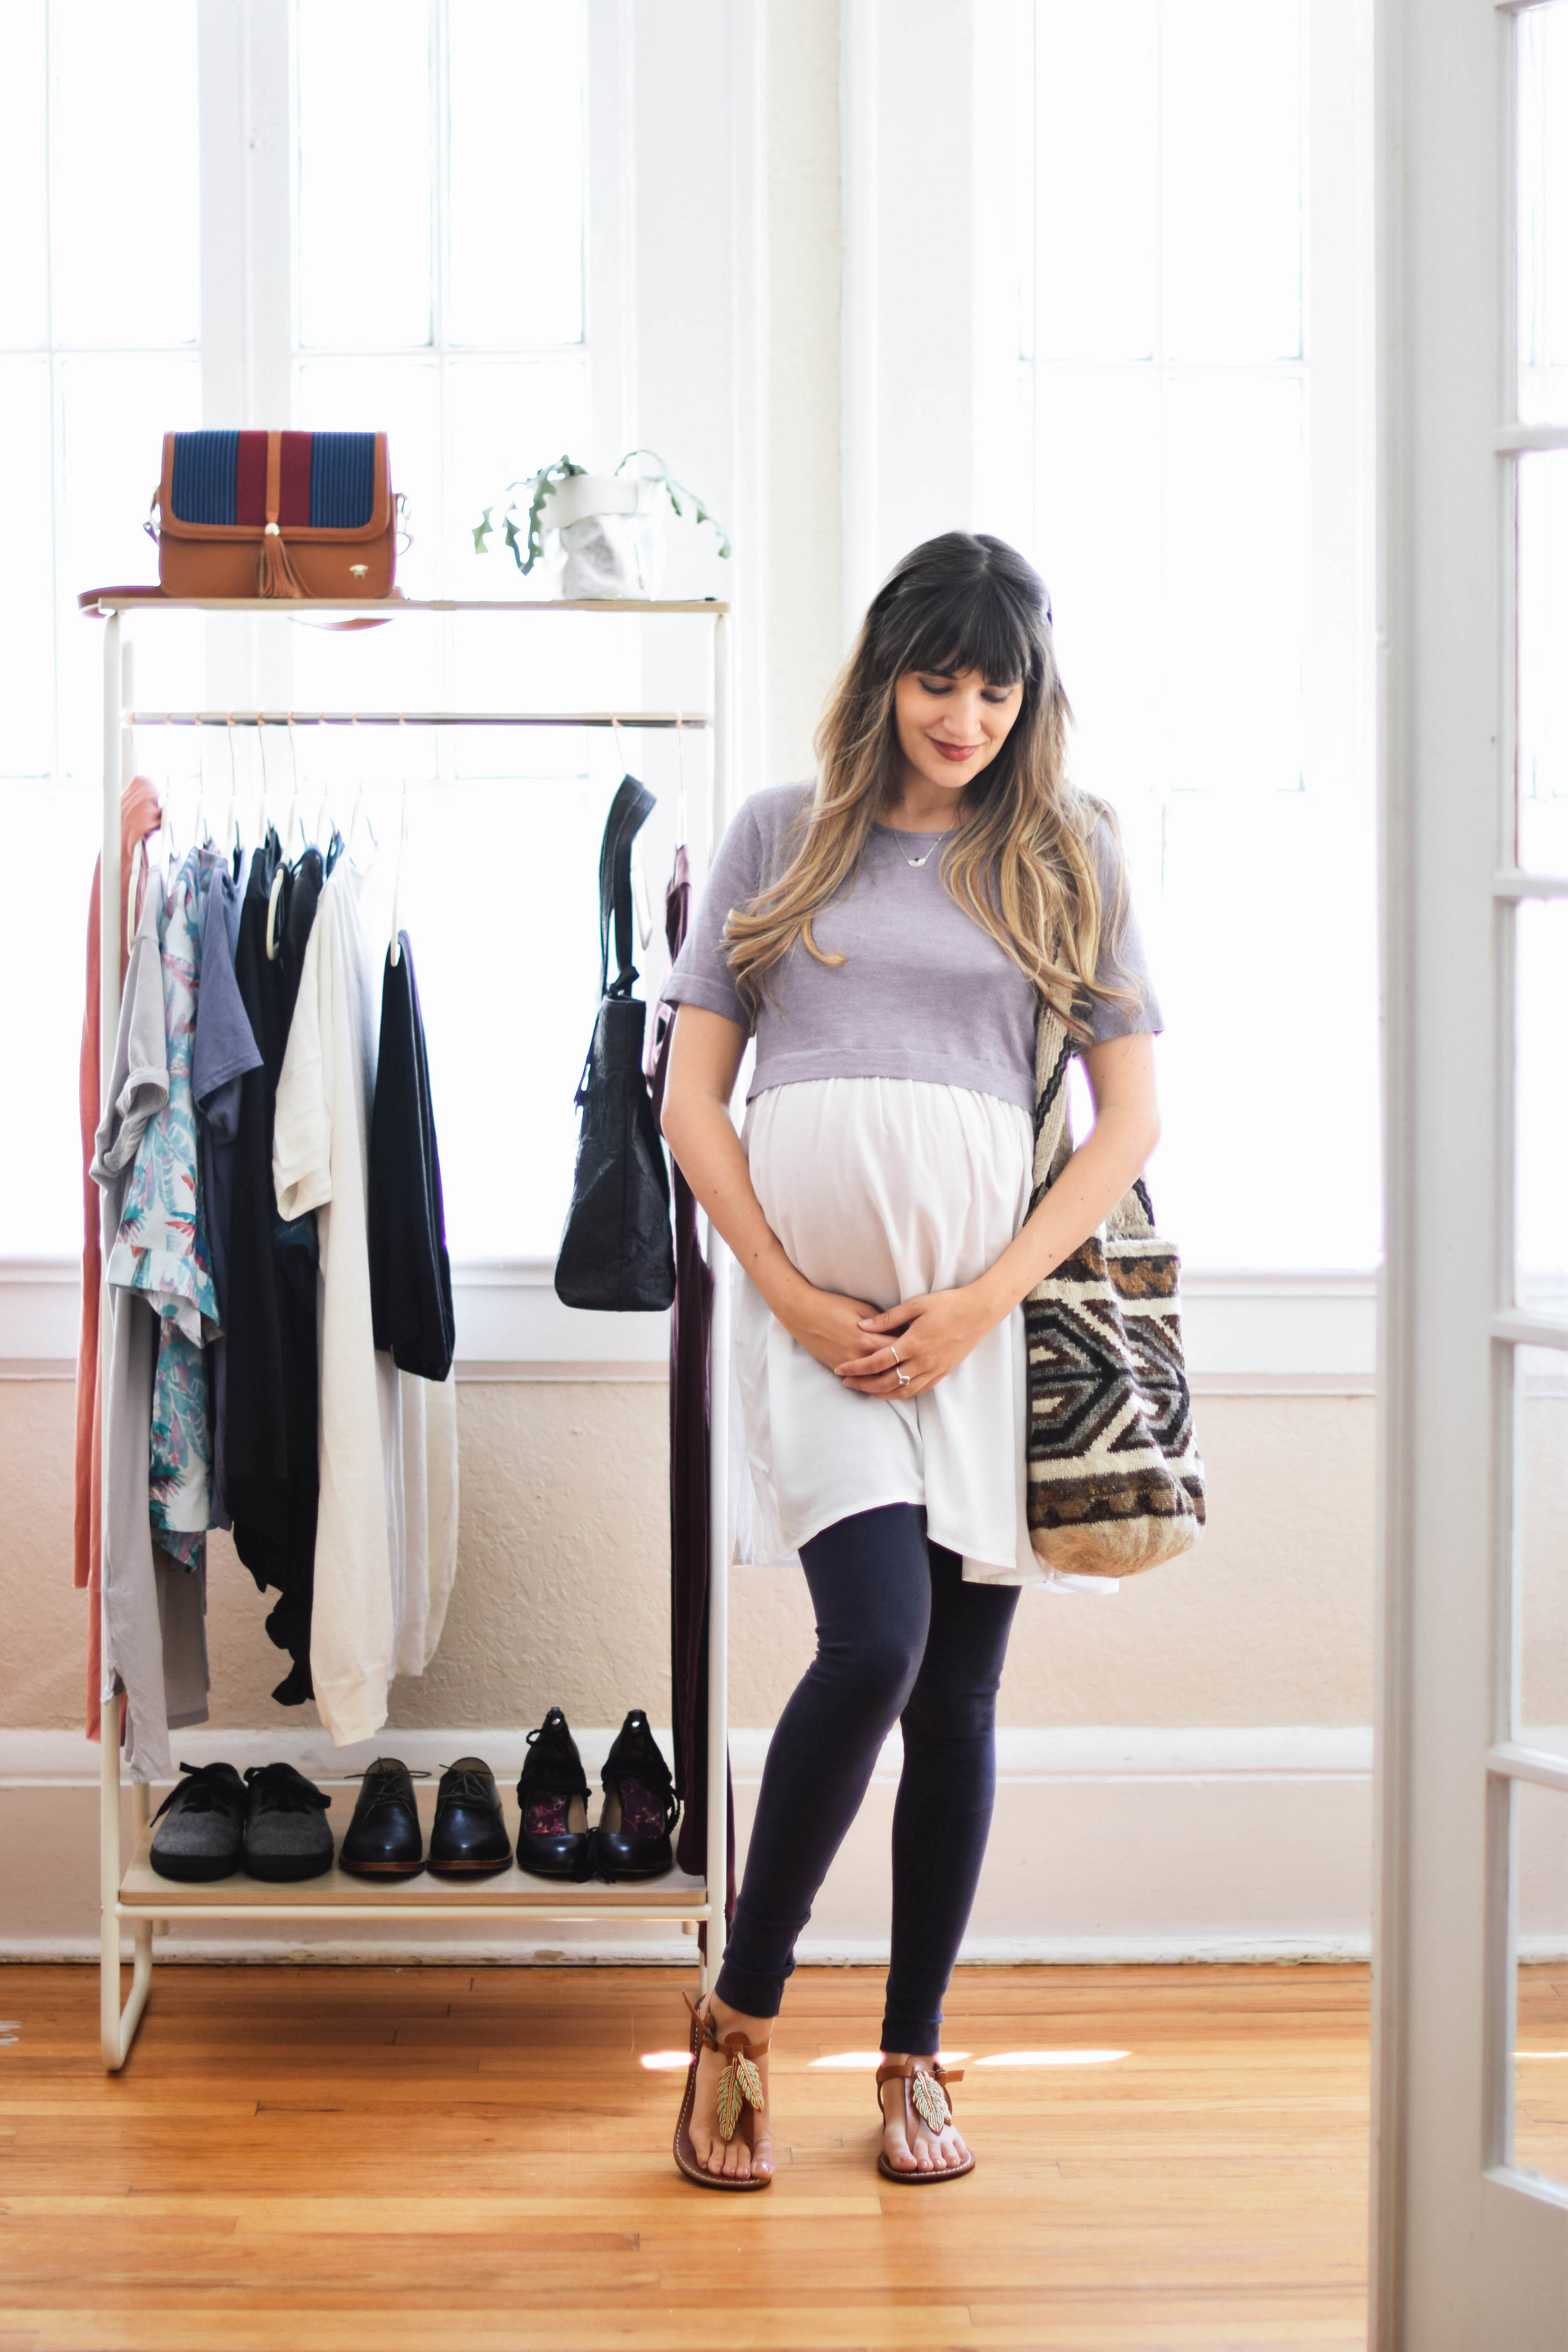 Casual organic cotton pregnancy outfit // A Week Of Sustainable Maternity Outfits With Natalie Kay Smith From Sustainably Chic on The Good Trade